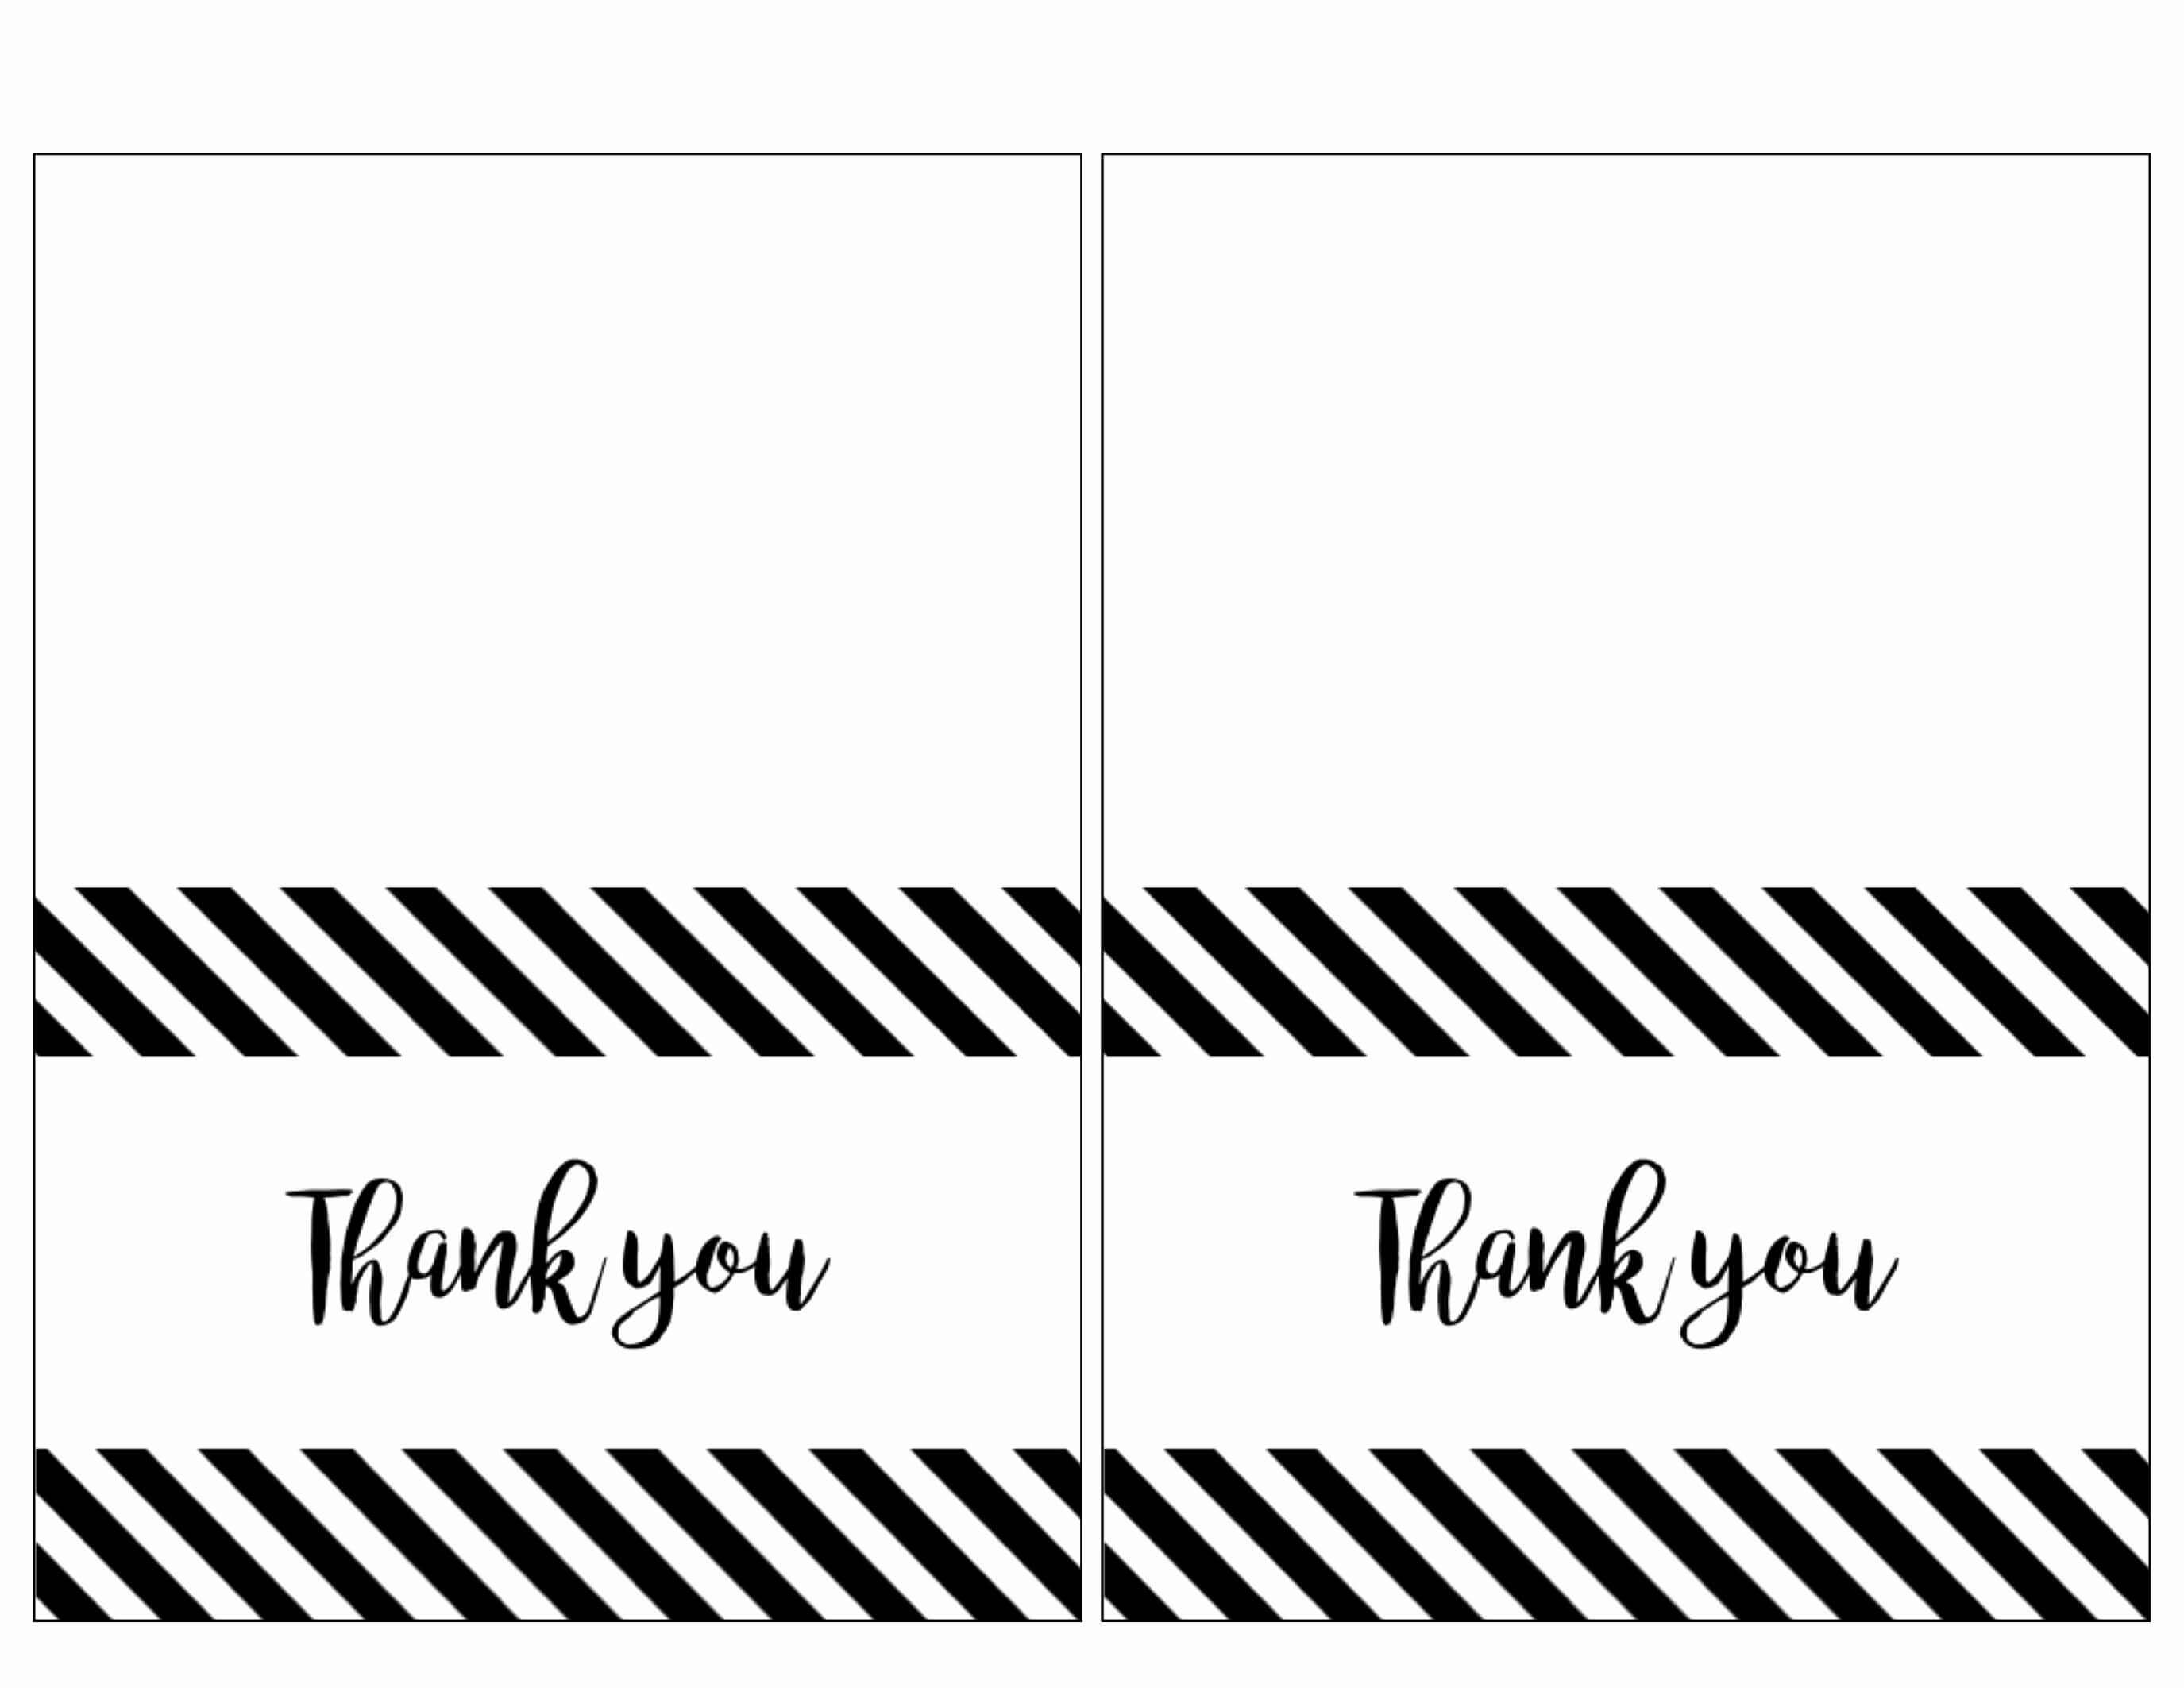 014 Printable Thank You Note Template Beautiful Free Cards With Free Templates For Cards Print